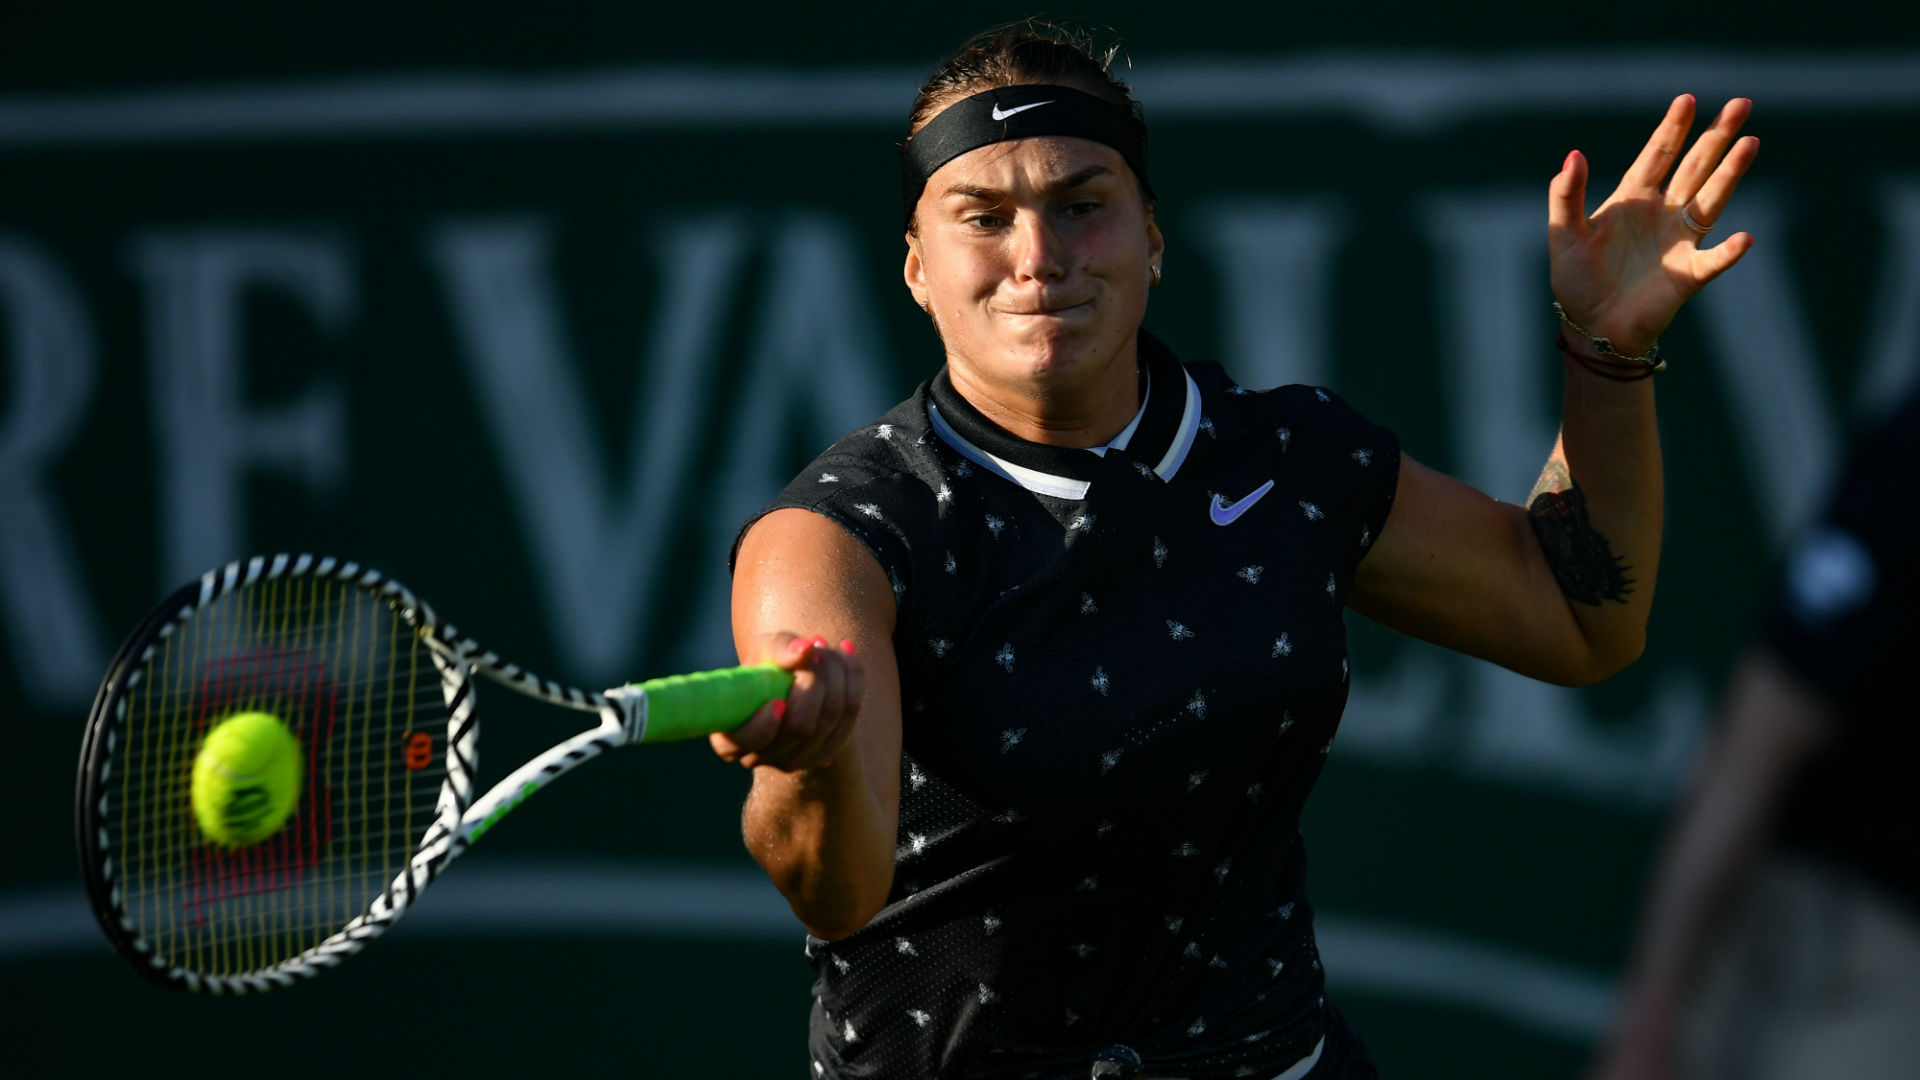 Aryna Sabalenka staged a superb third-set comeback at Eastbourne on Wednesday to end Caroline Wozniacki's title defence.